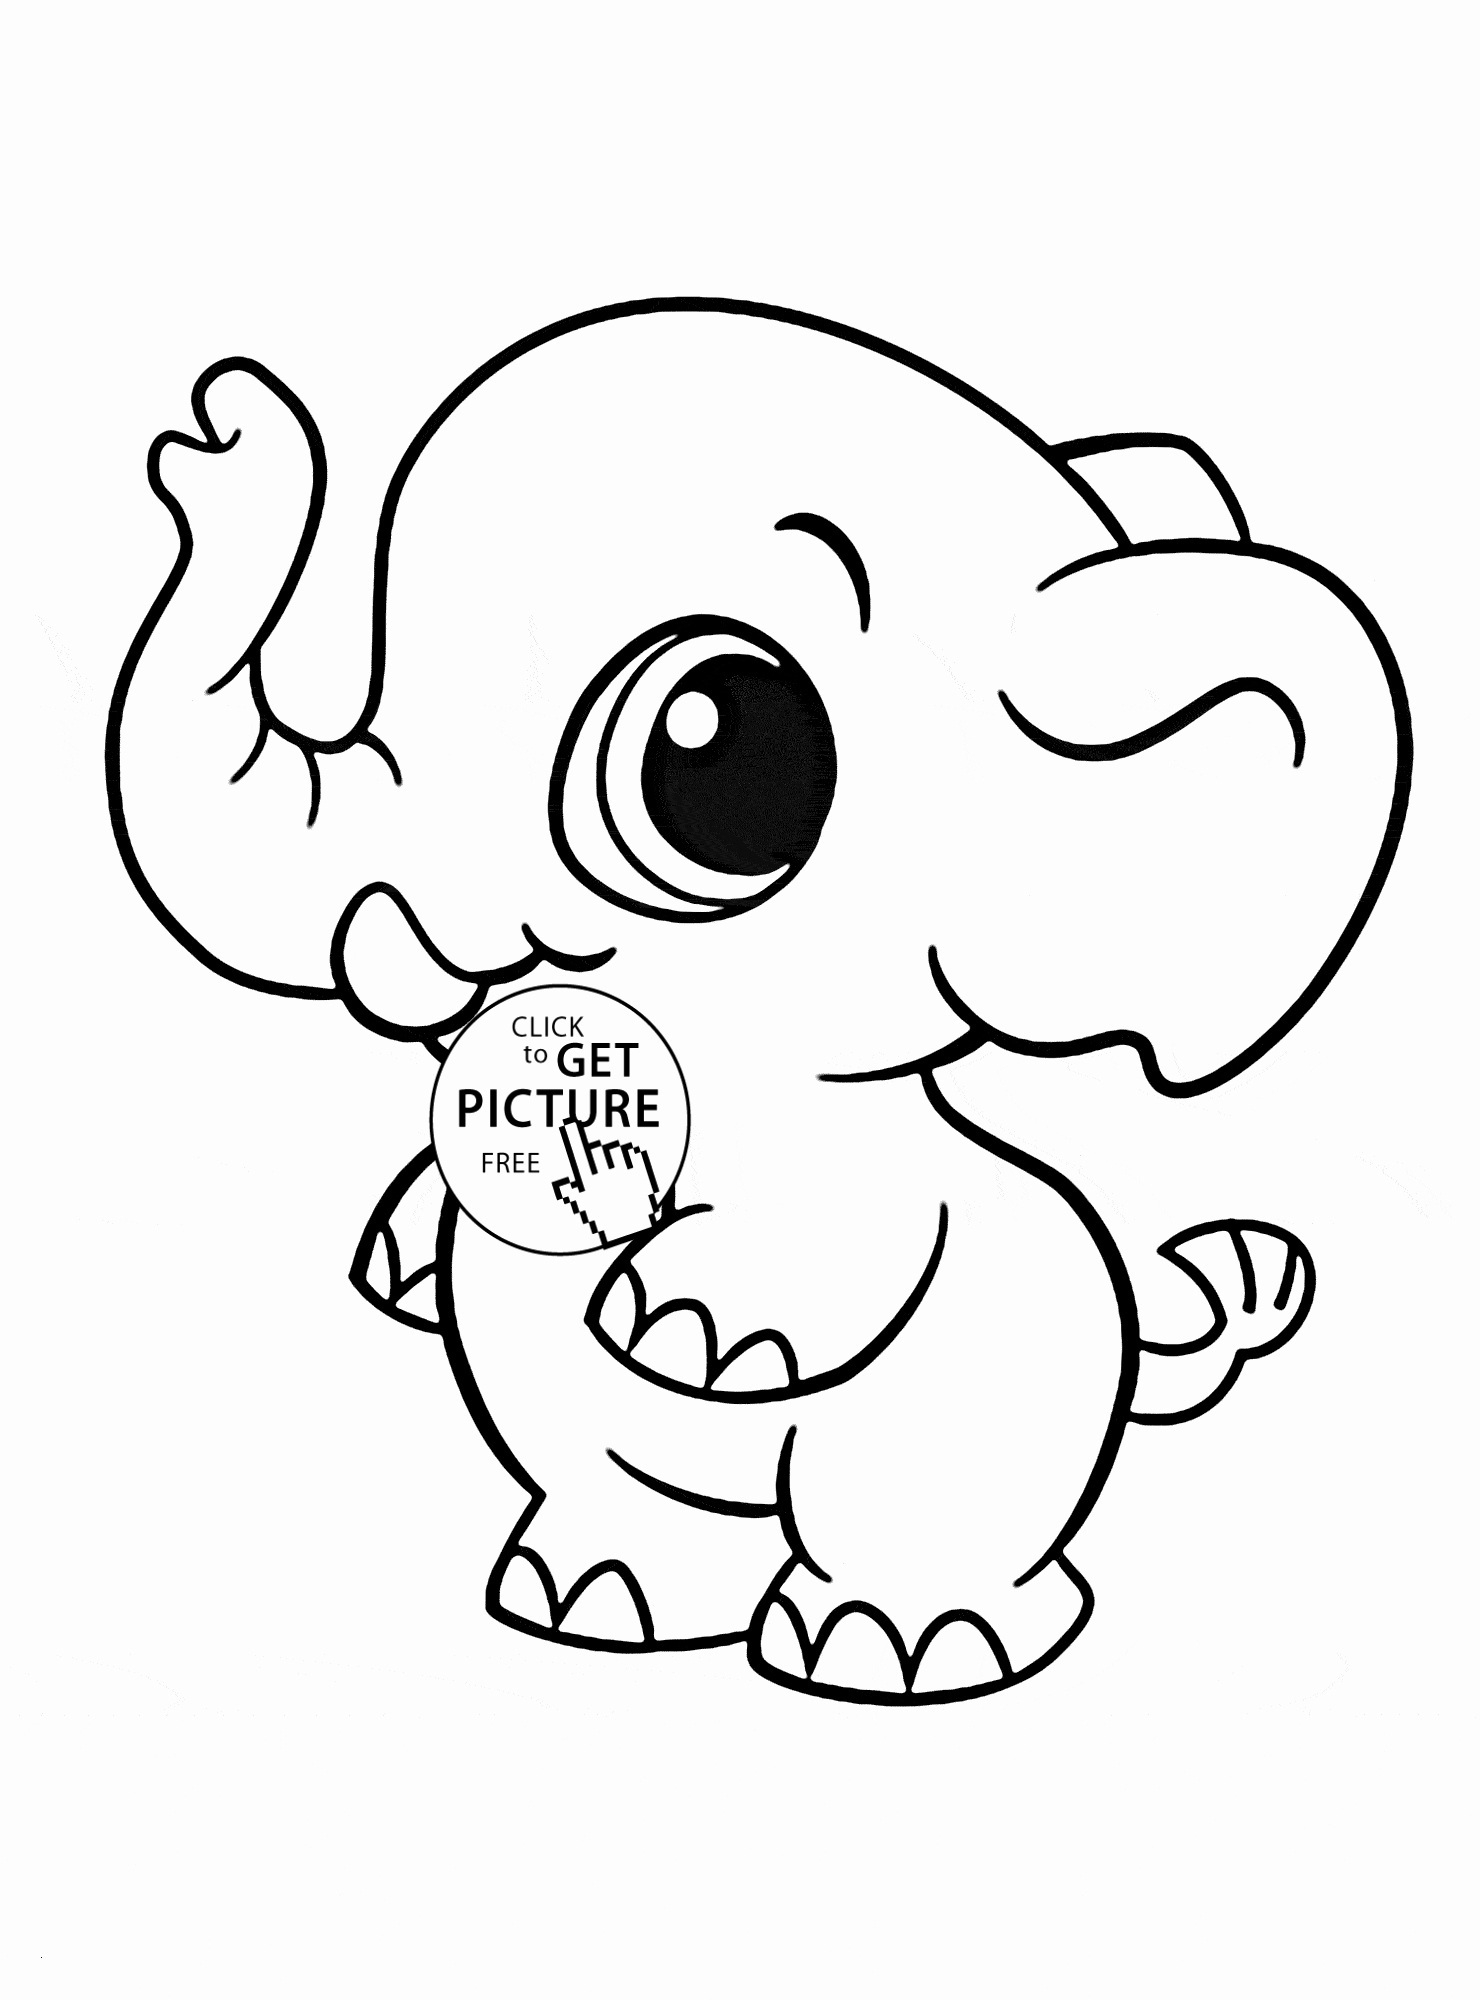 Teddy Bear Coloring Pages to Print  Collection 5a - Free For kids